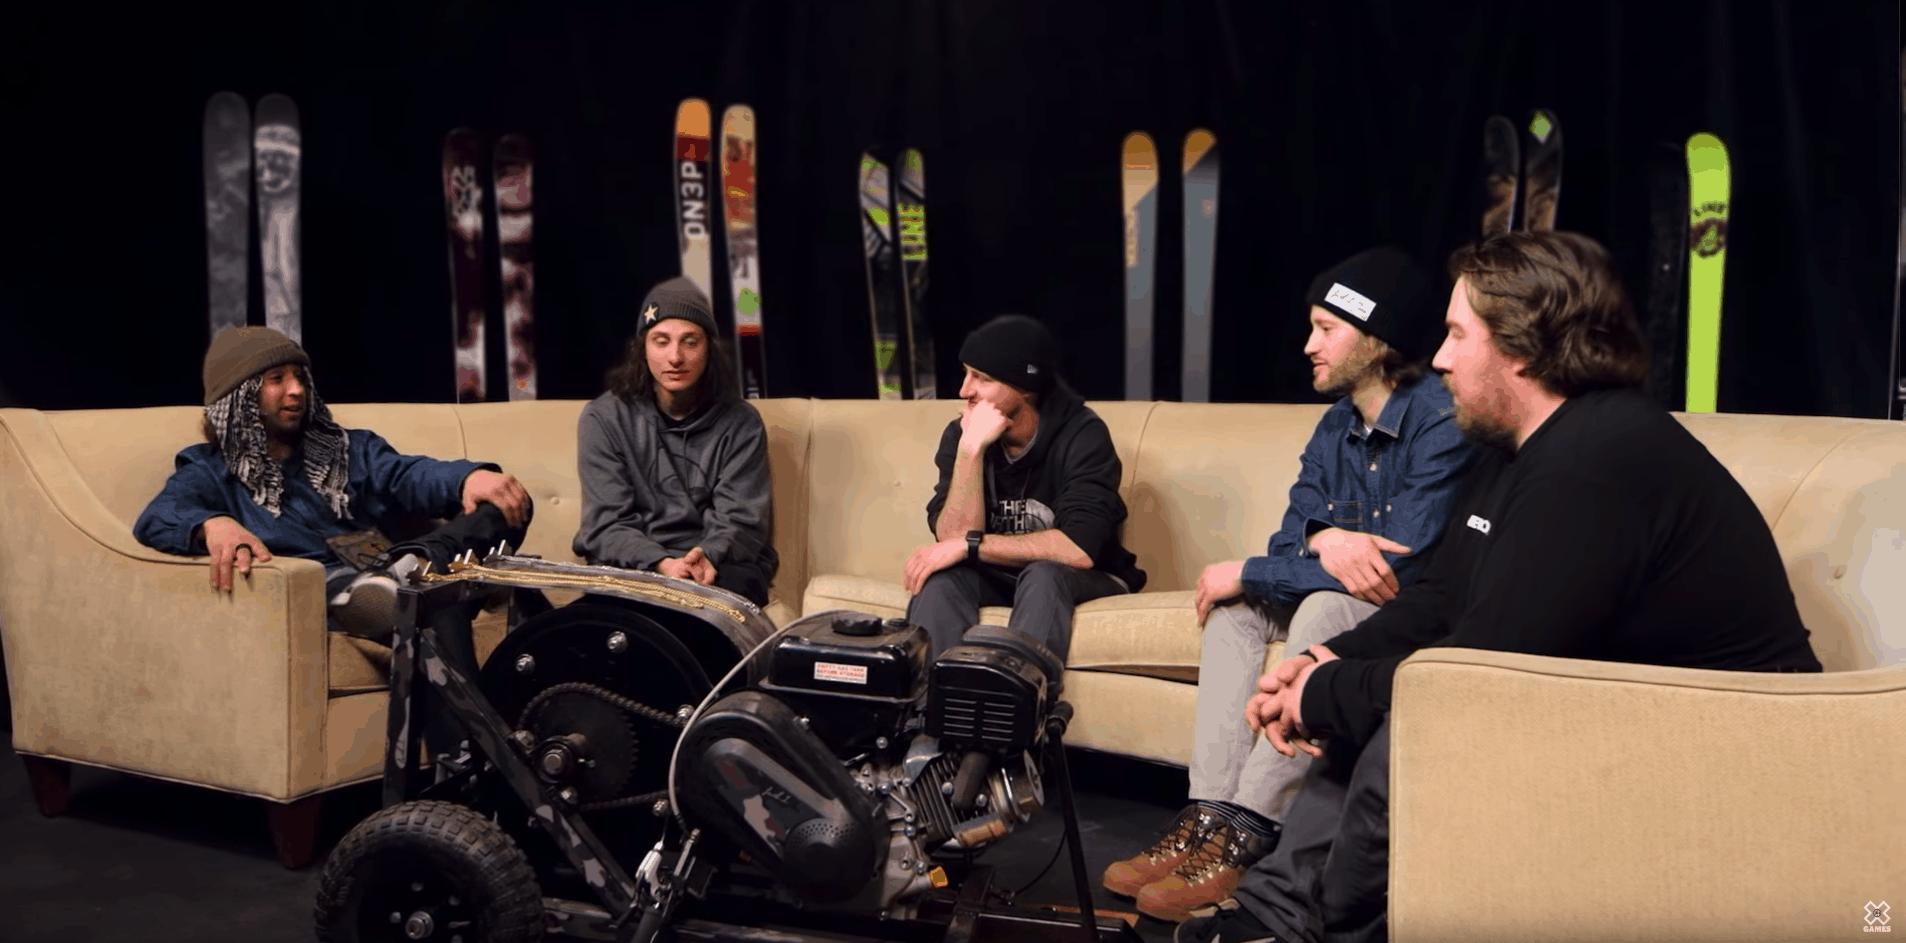 still of x games interview on couch